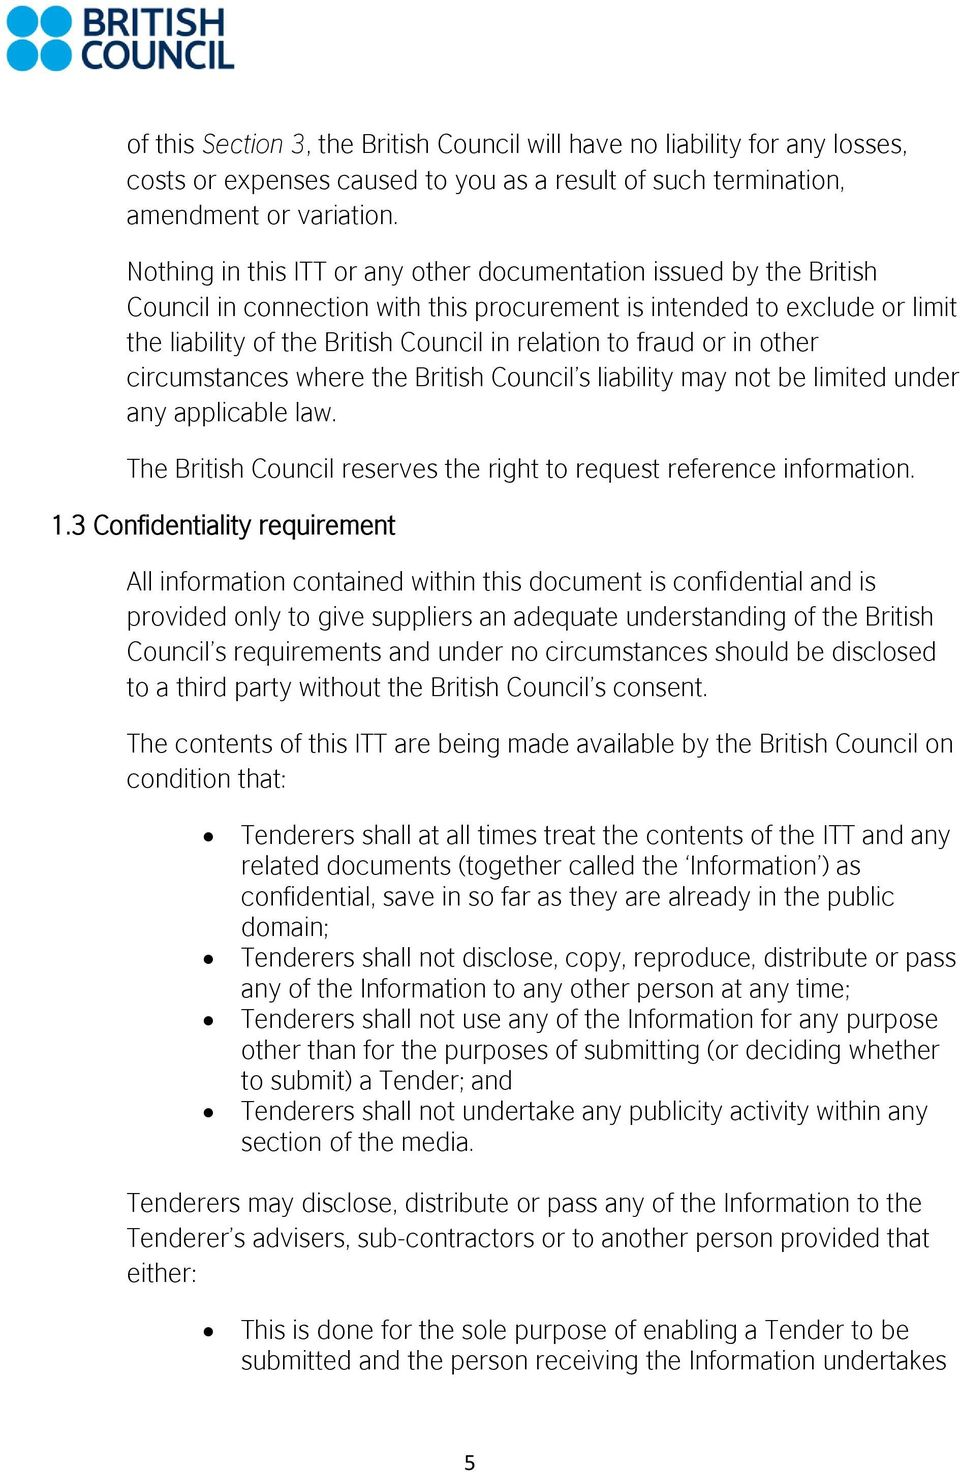 fraud or in other circumstances where the British Council s liability may not be limited under any applicable law. The British Council reserves the right to request reference information. 1.